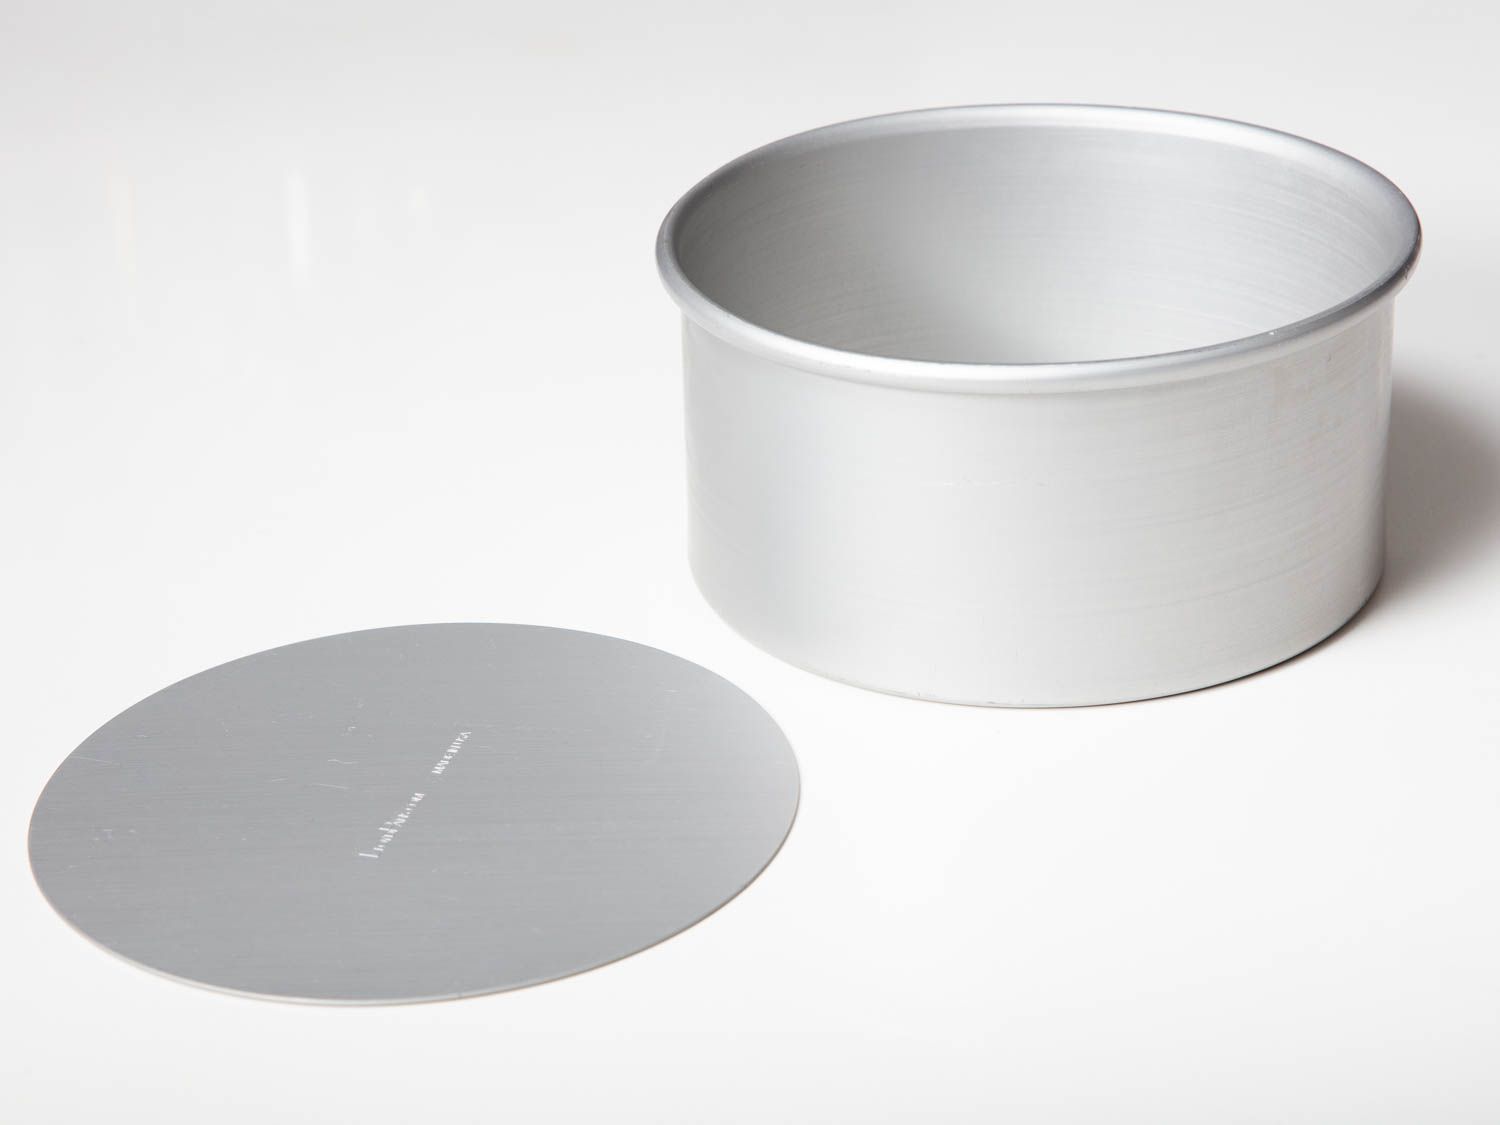 An empty aluminum cheesecake pan which was designed and manufactured specifically for this recipe